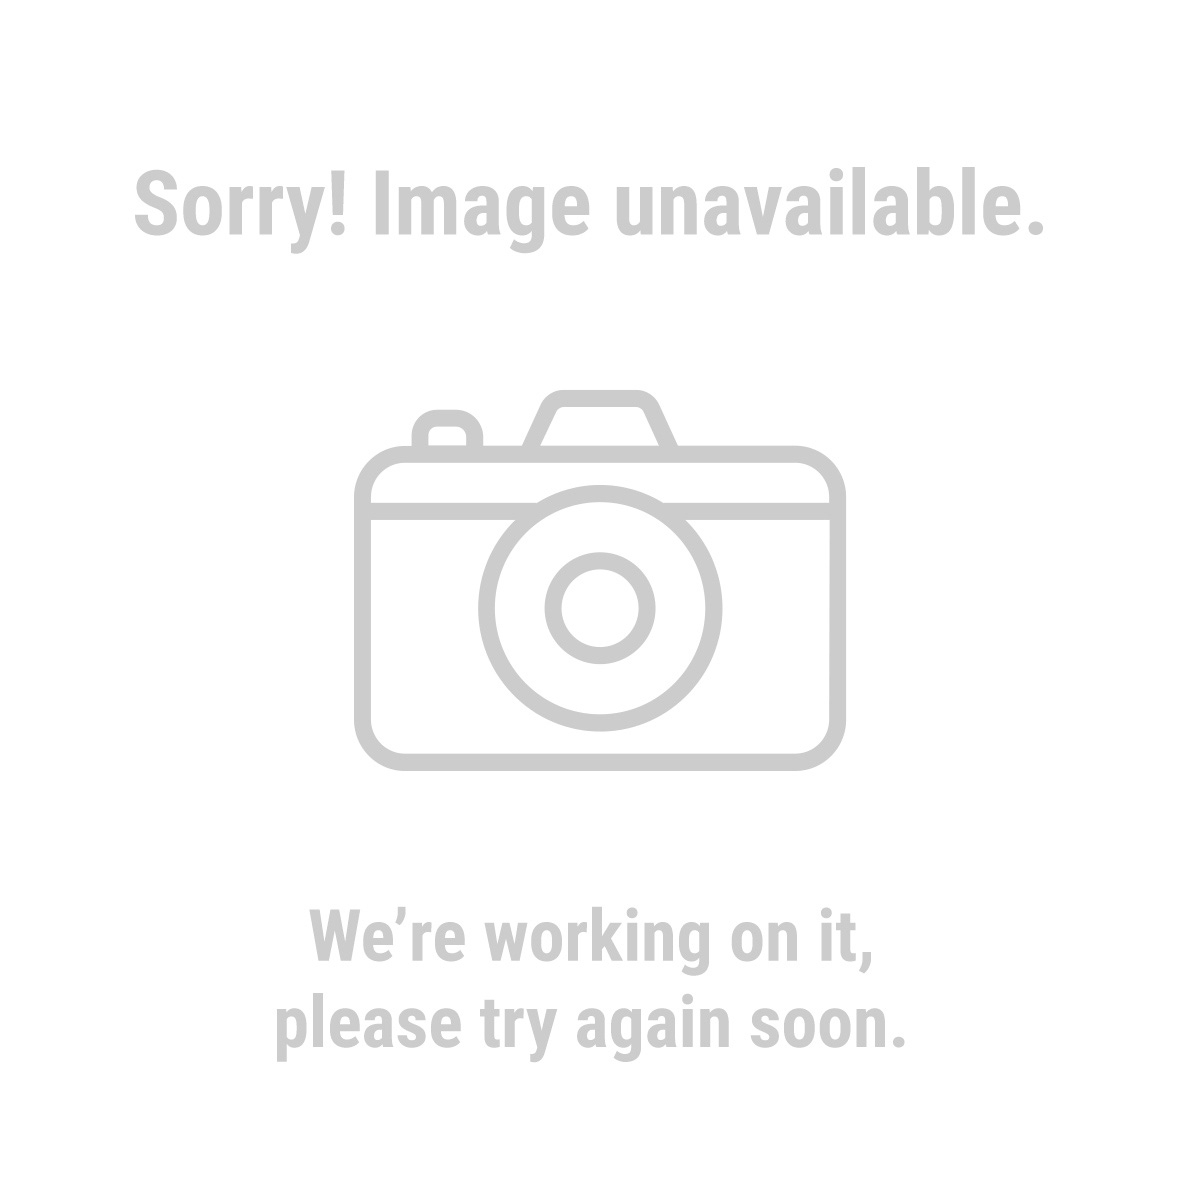 Portland Saw 68116 9 Piece Carbide Grit Hole Saw Kit